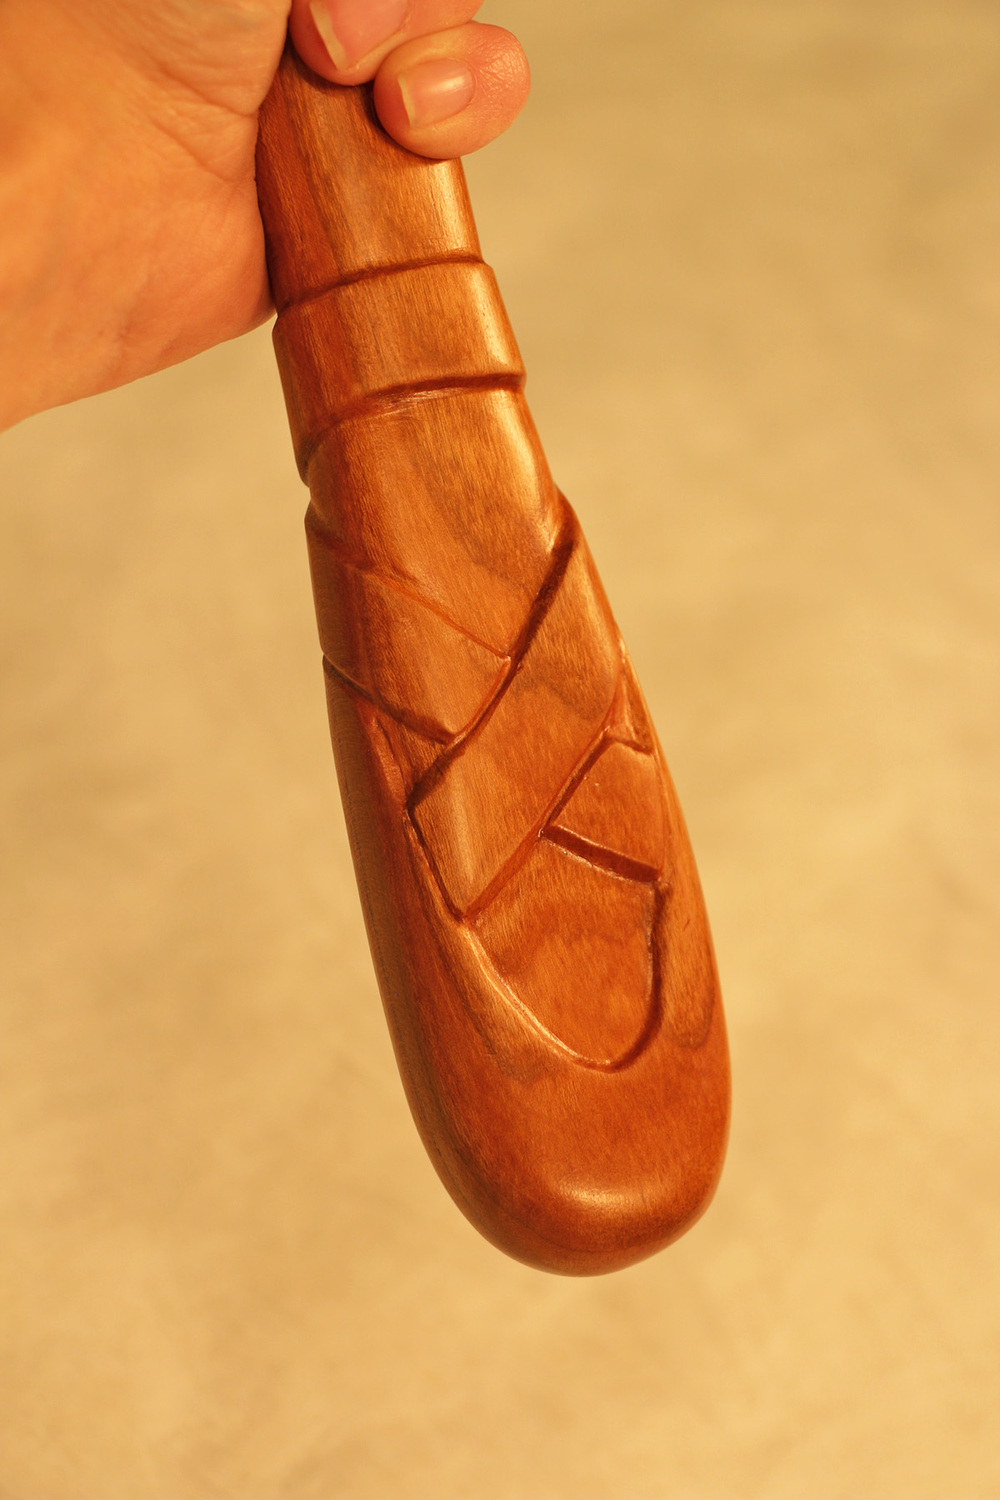 Cherry Carved Mirror Handle.jpg